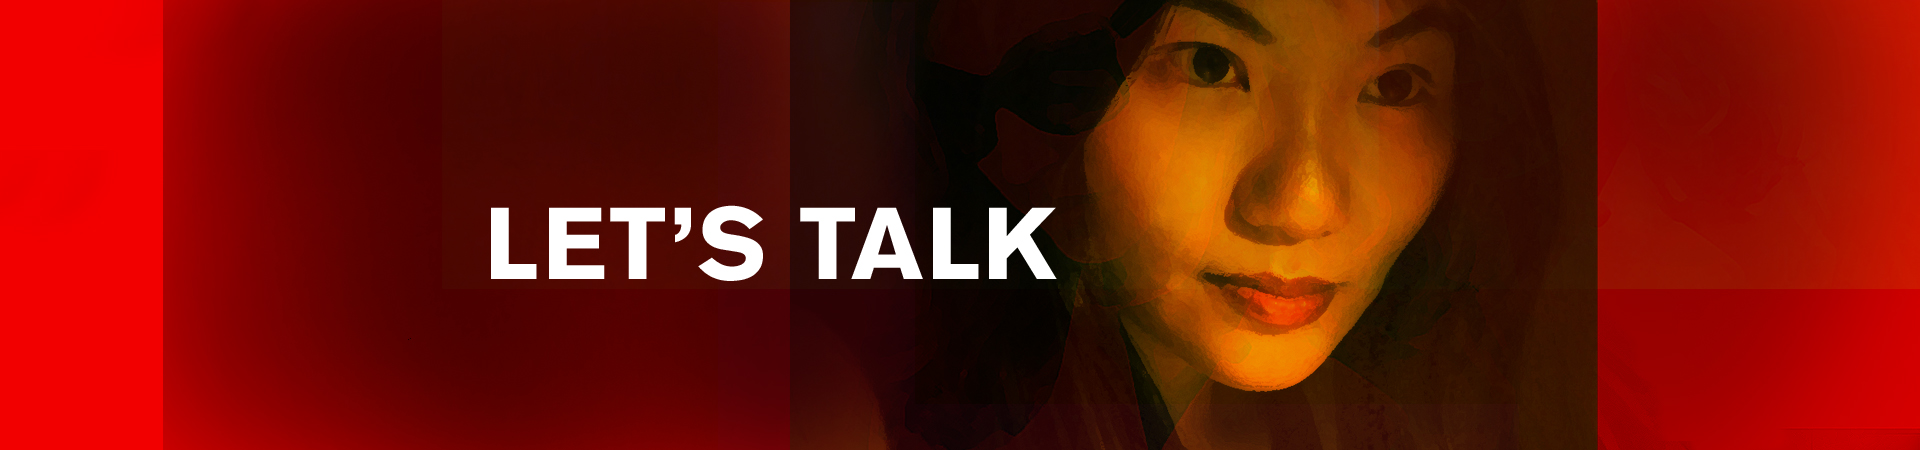 Let's Talk – red graphic